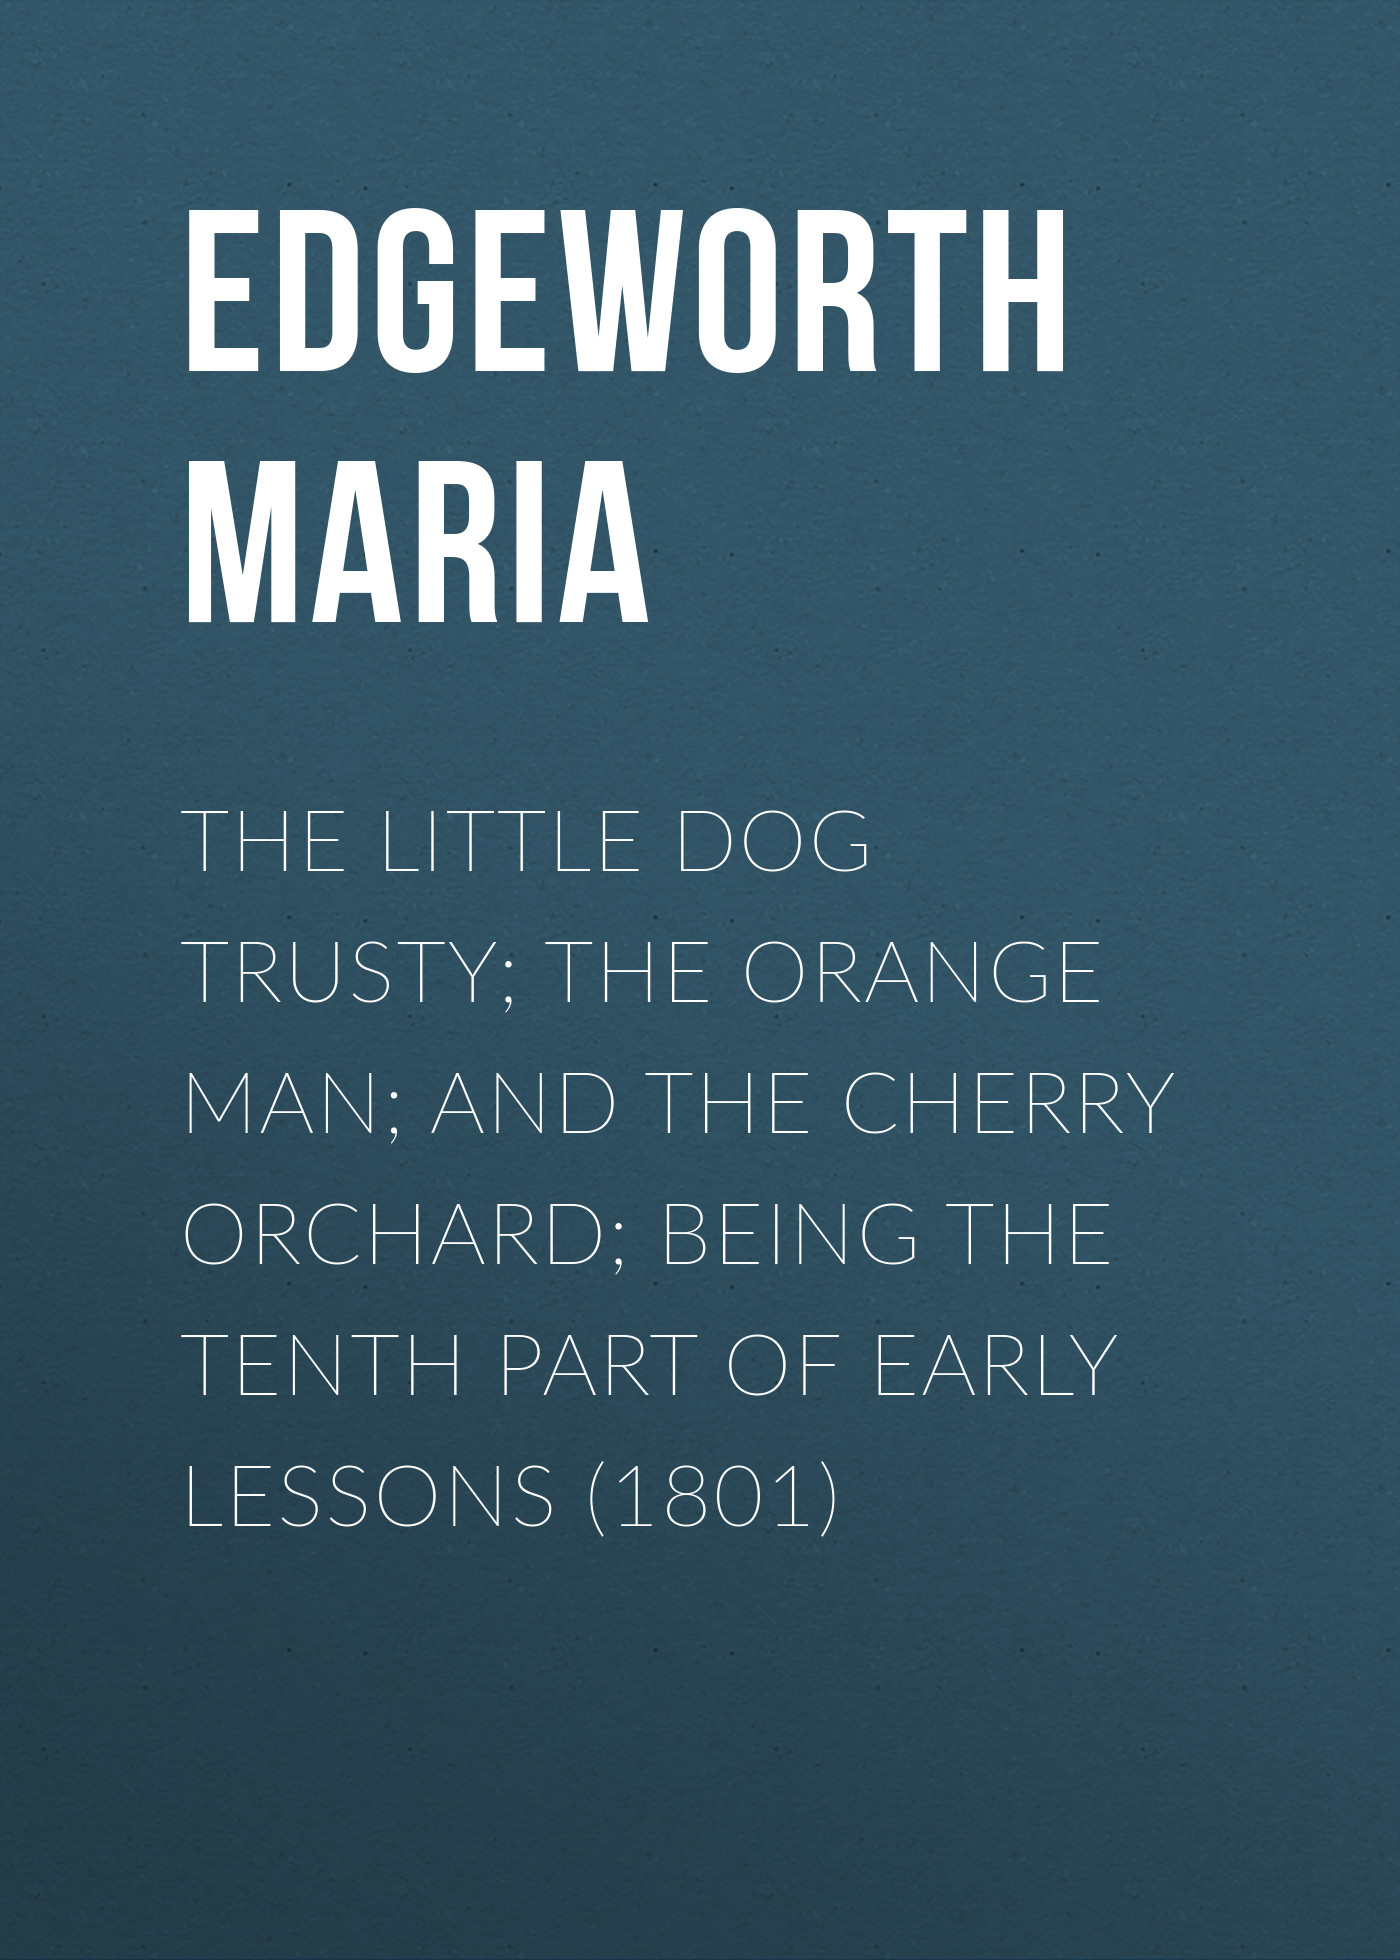 Edgeworth Maria The Little Dog Trusty; The Orange Man; and the Cherry Orchard; Being the Tenth Part of Early Lessons (1801) the little man